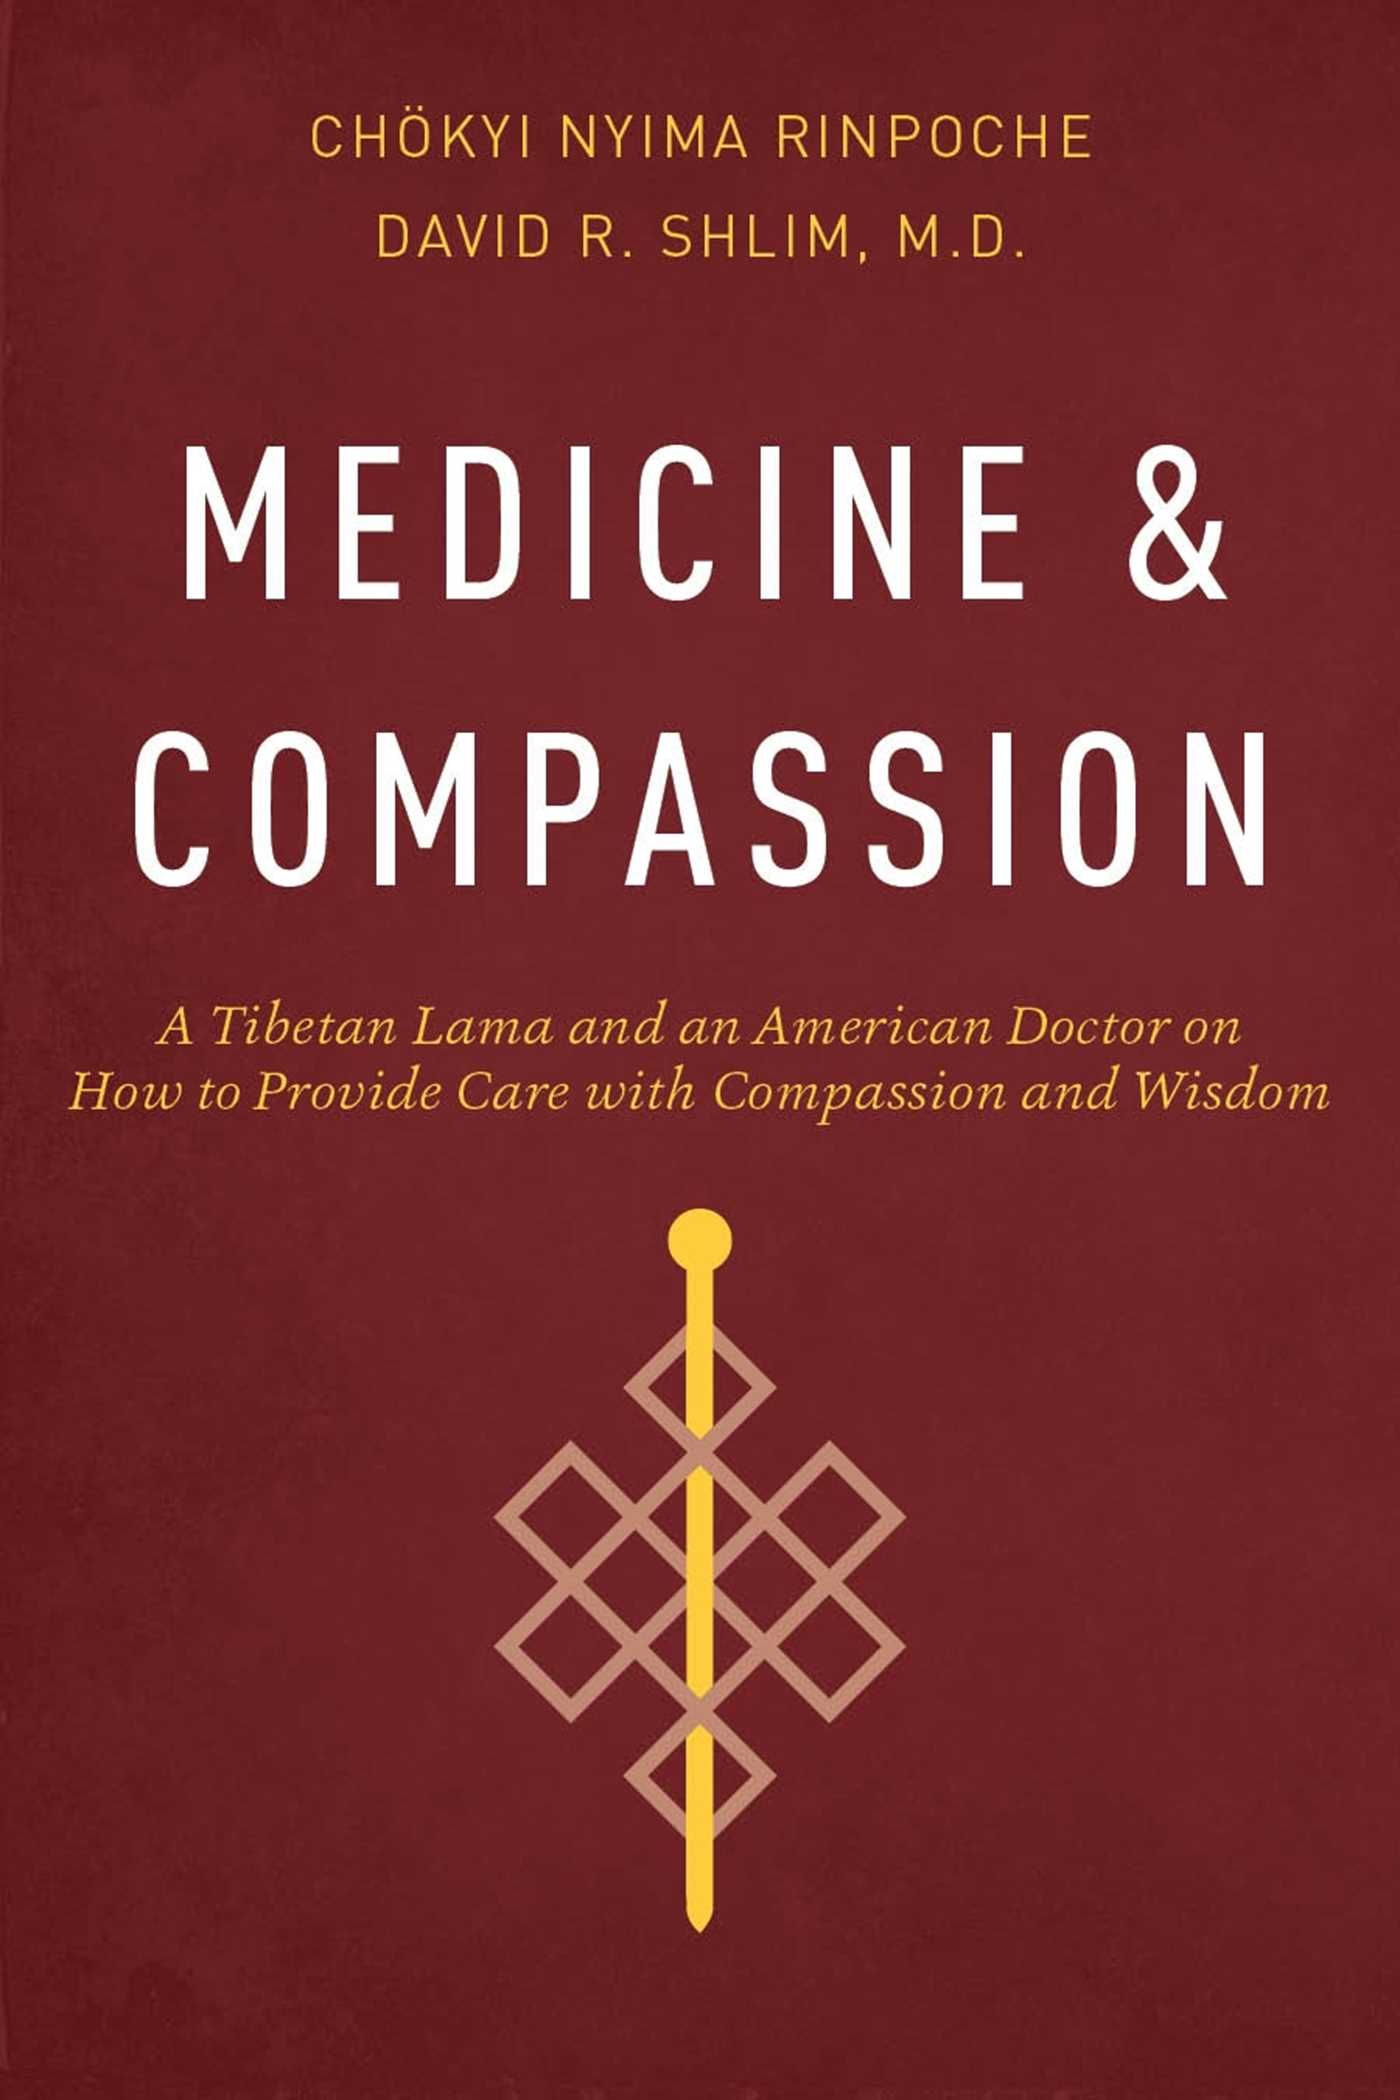 compassion in medicine What is the difference between empathy and compassion some of our users are interested in the difference between empathy and compassion compassion is the broader word: it refers to both an understanding of another's pain and the desire to somehow mitigate that pain.